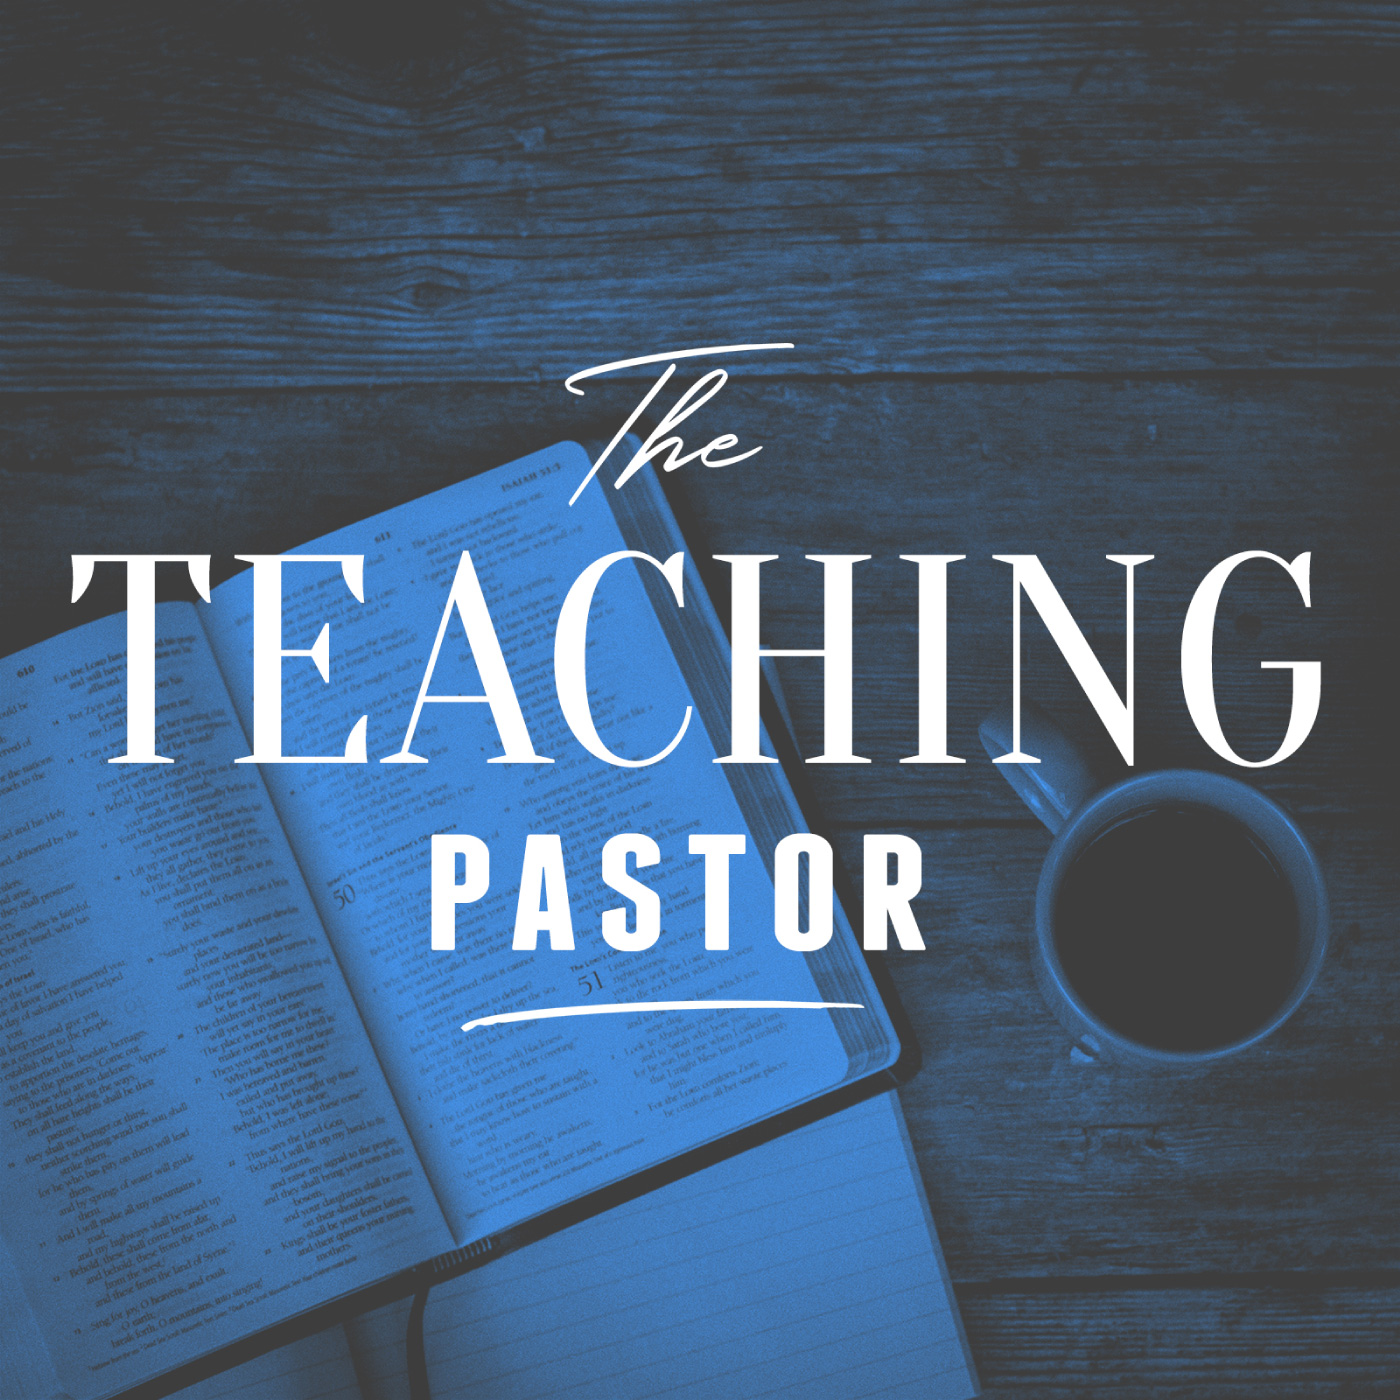 The Teaching Pastor